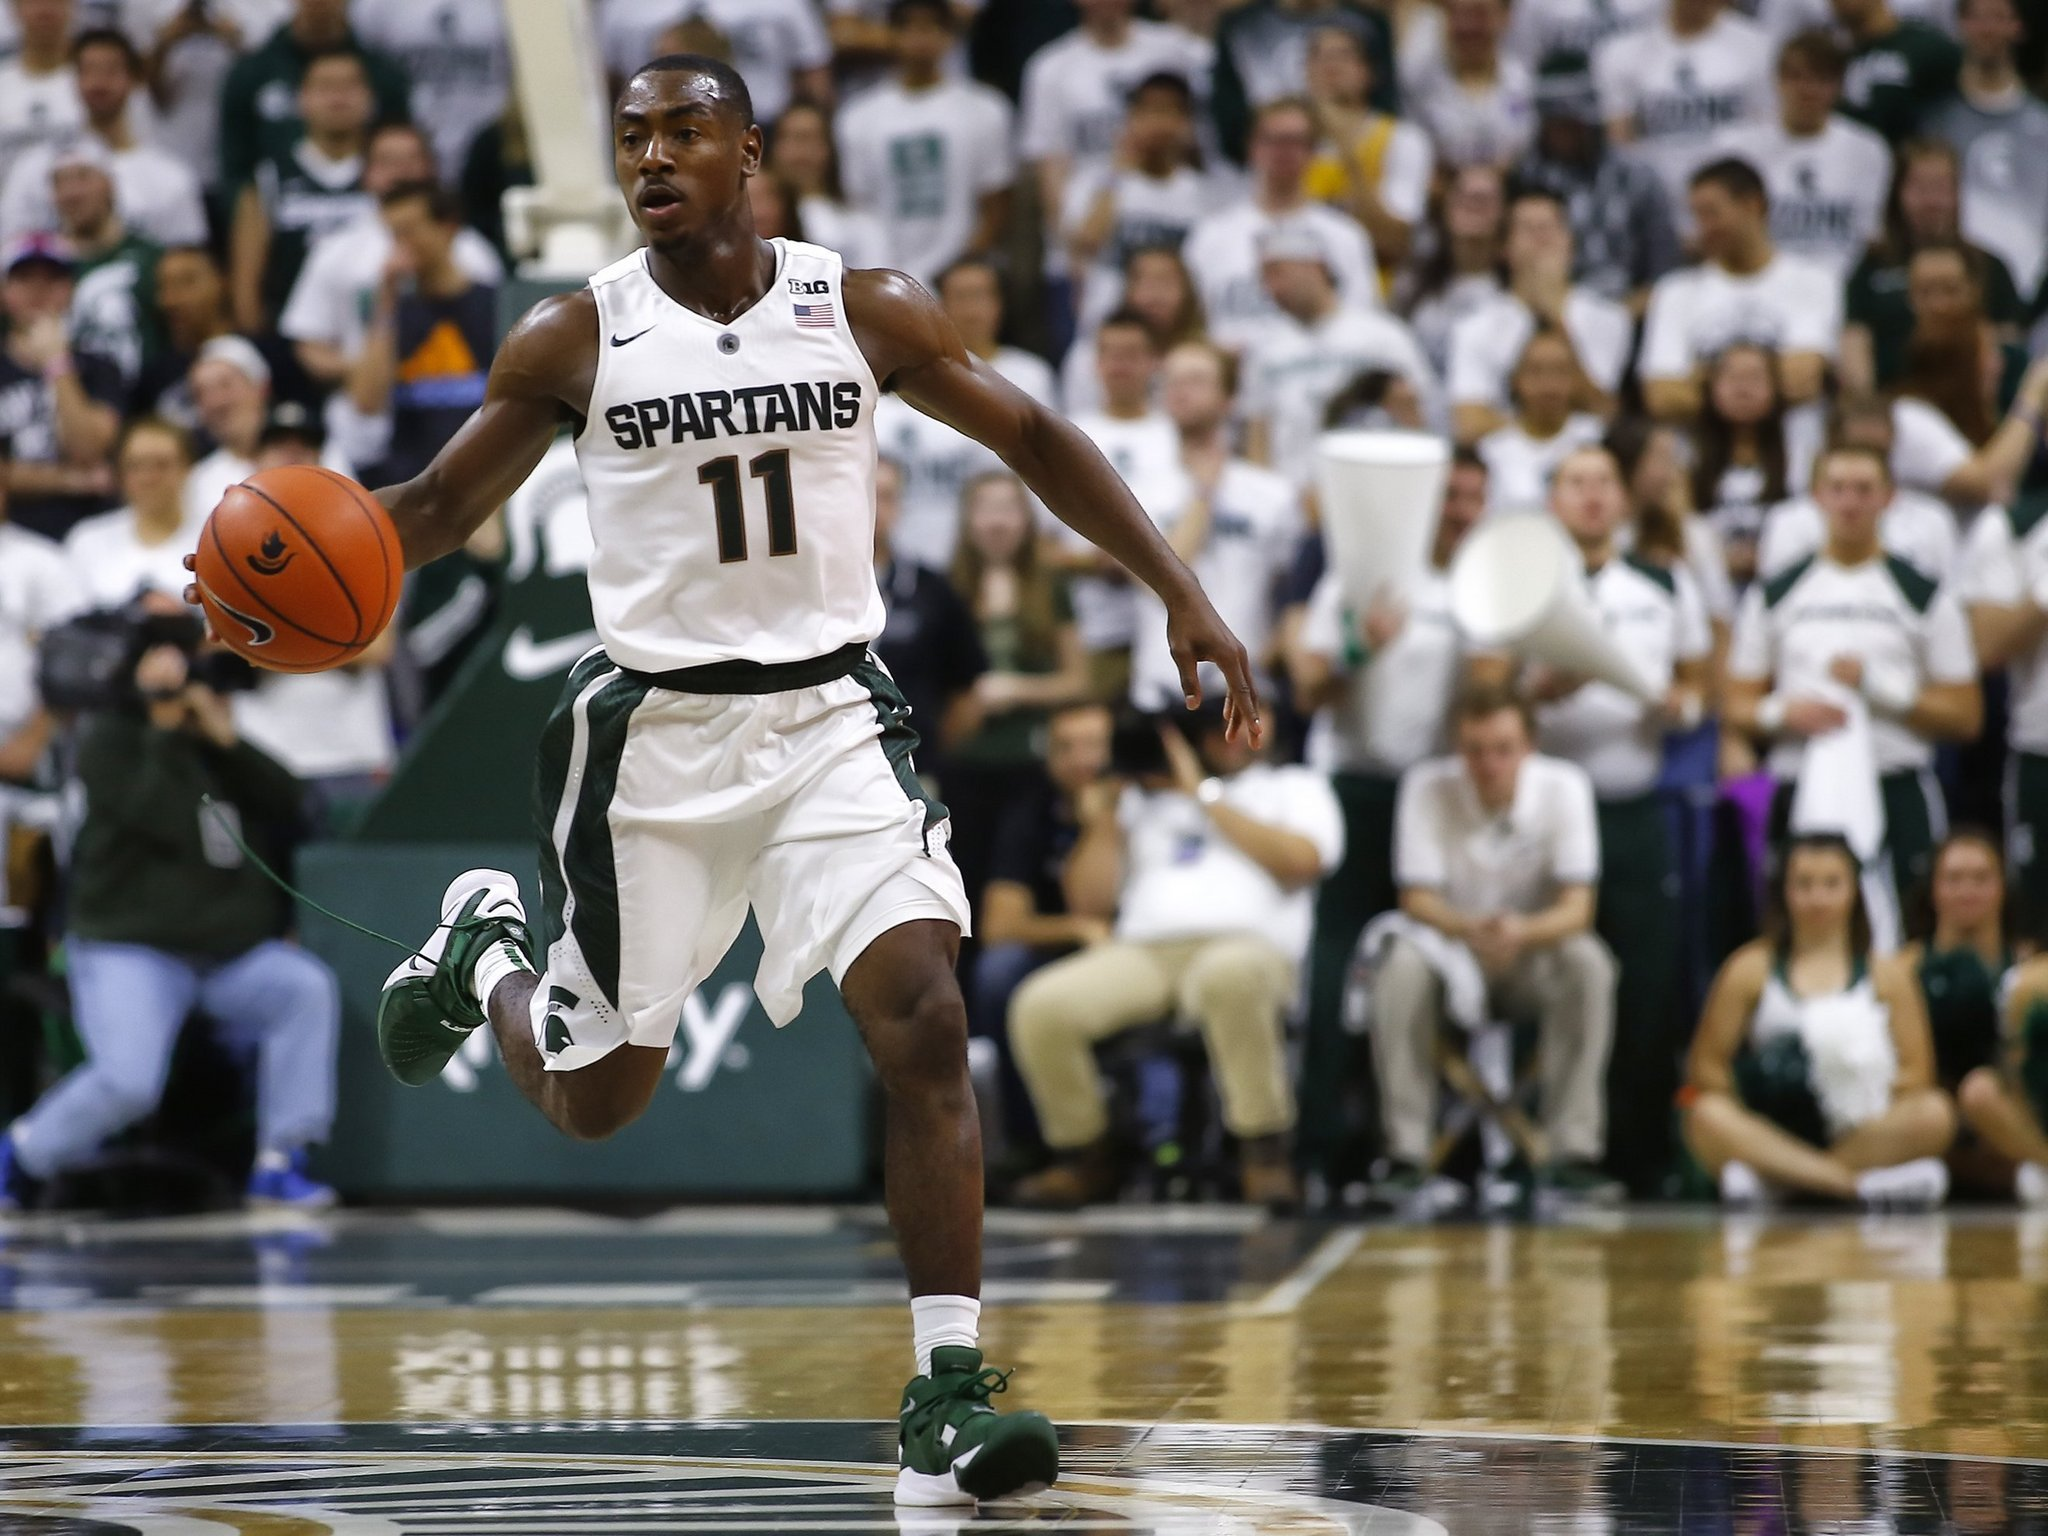 Nairn plays final game at Breslin Center